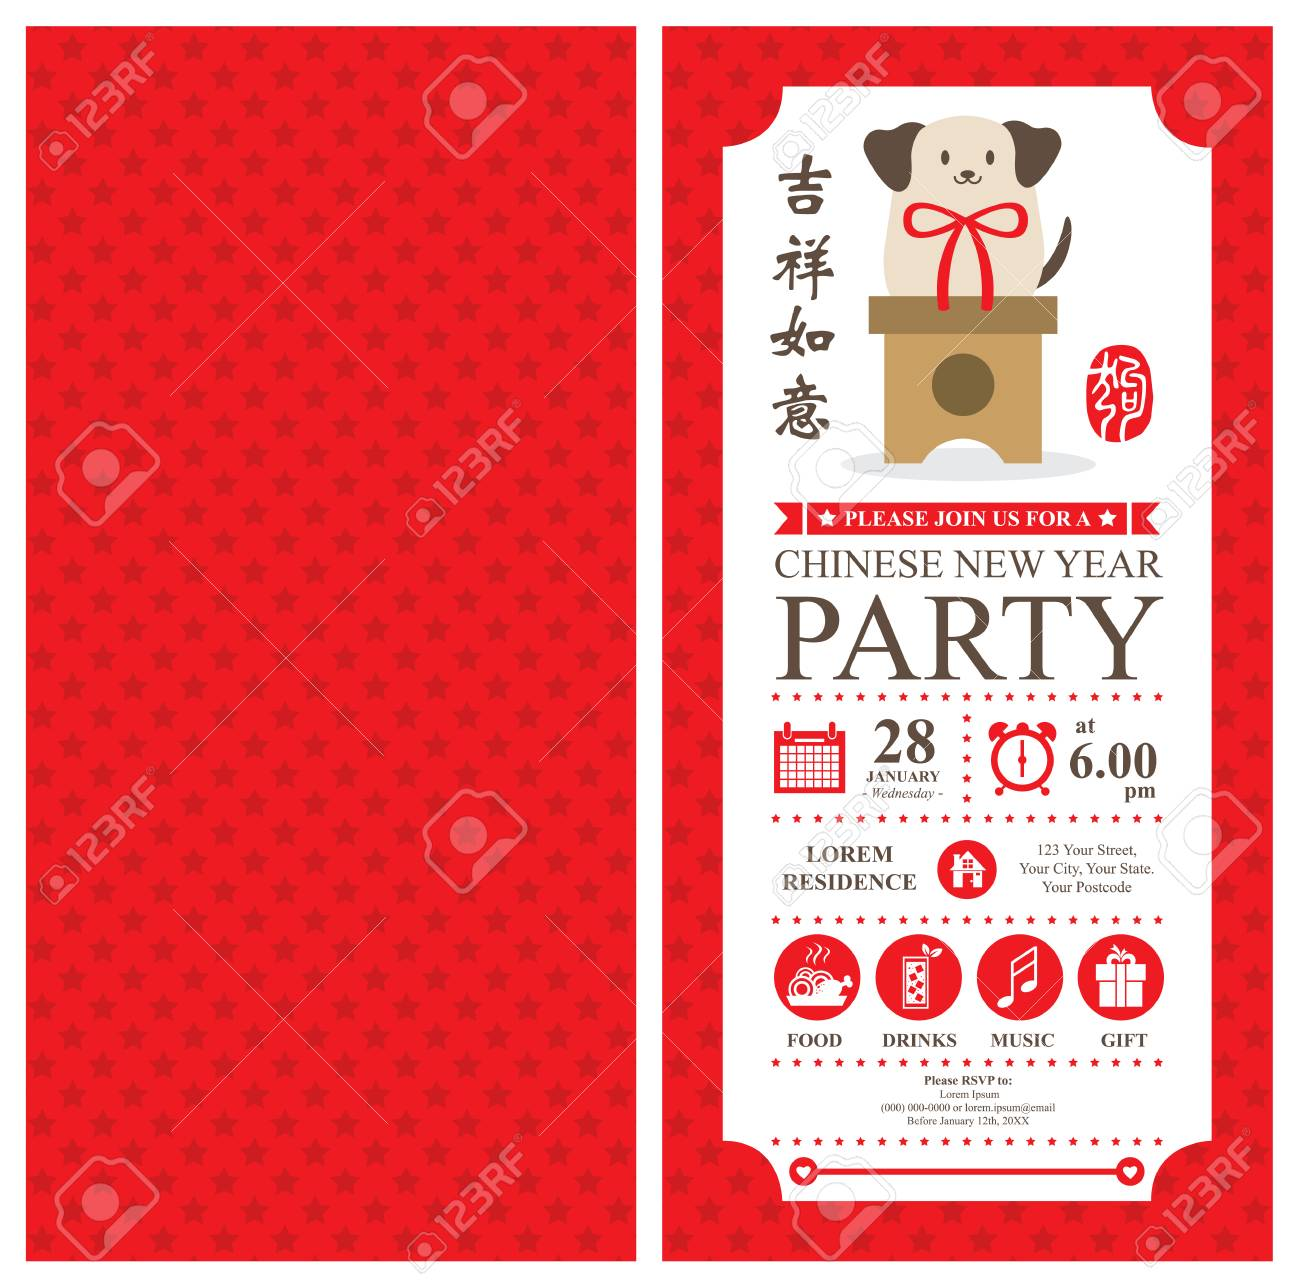 chinese new year invitation celebrate year of dog stock vector 91510845